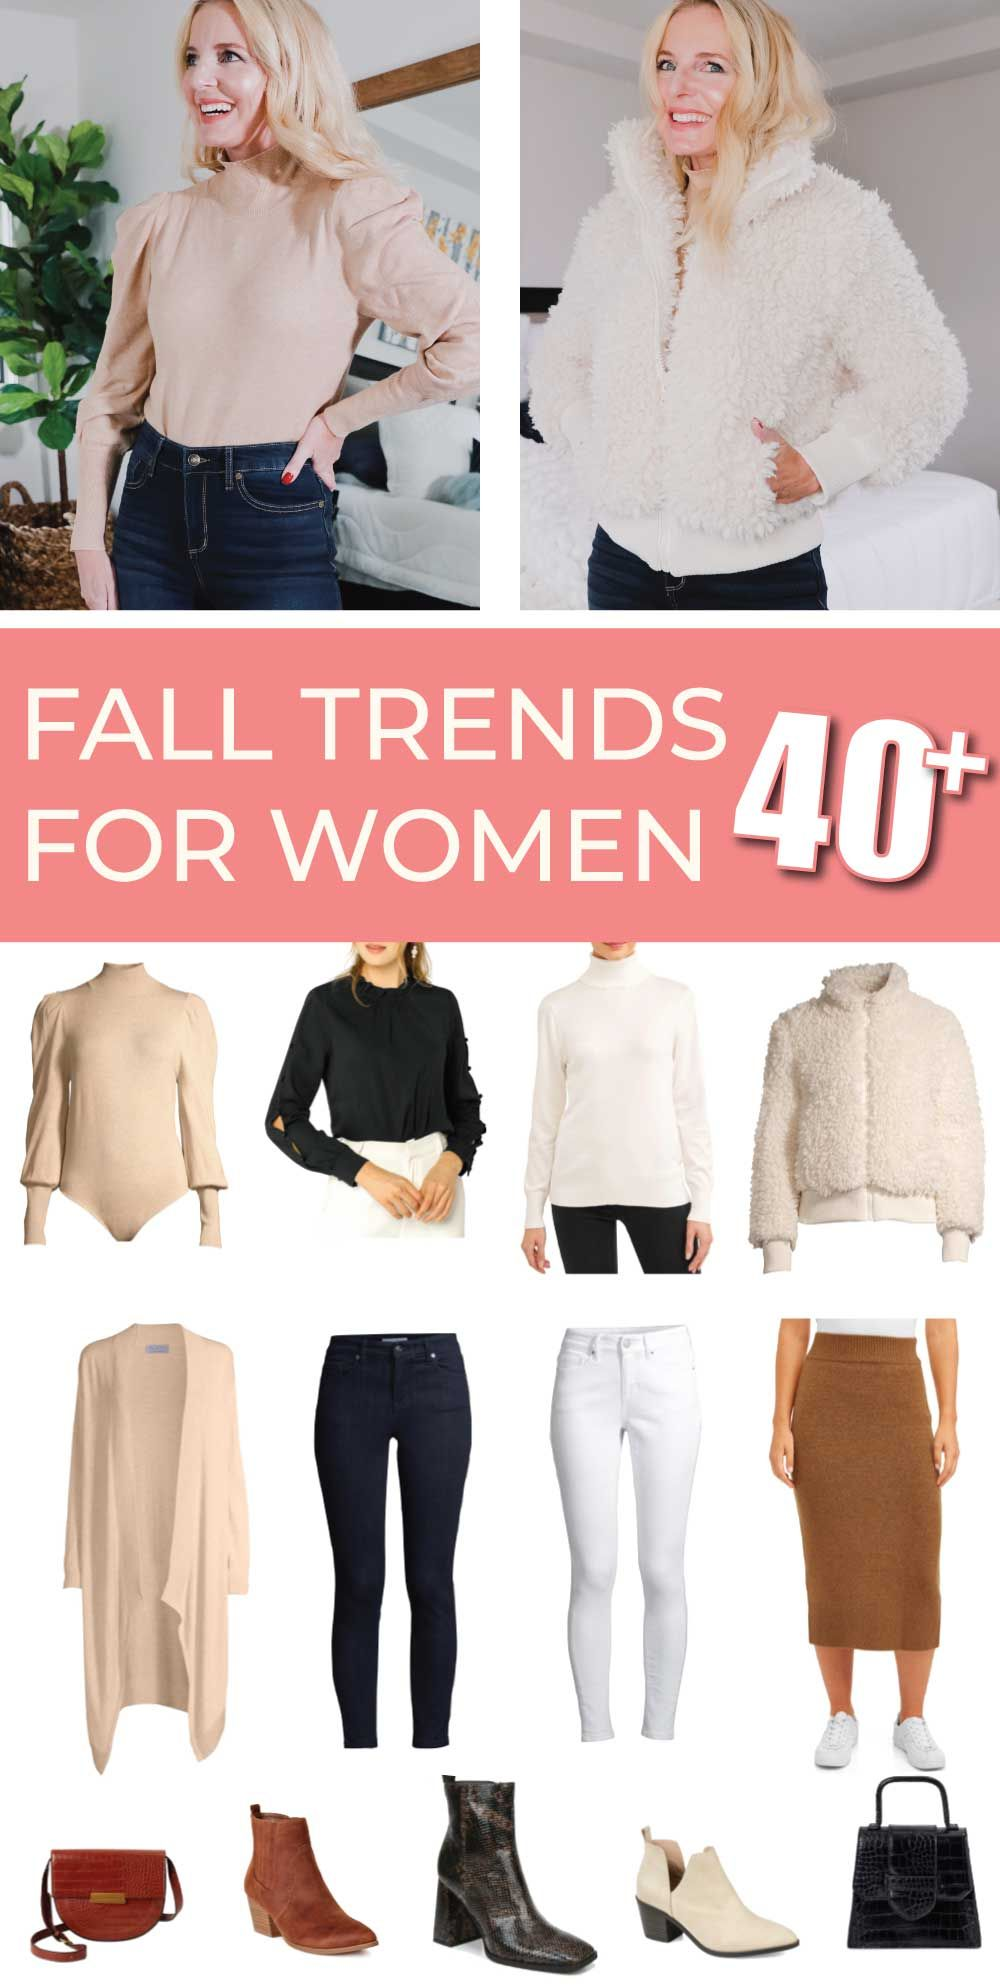 Fall Trends for Women Over 40